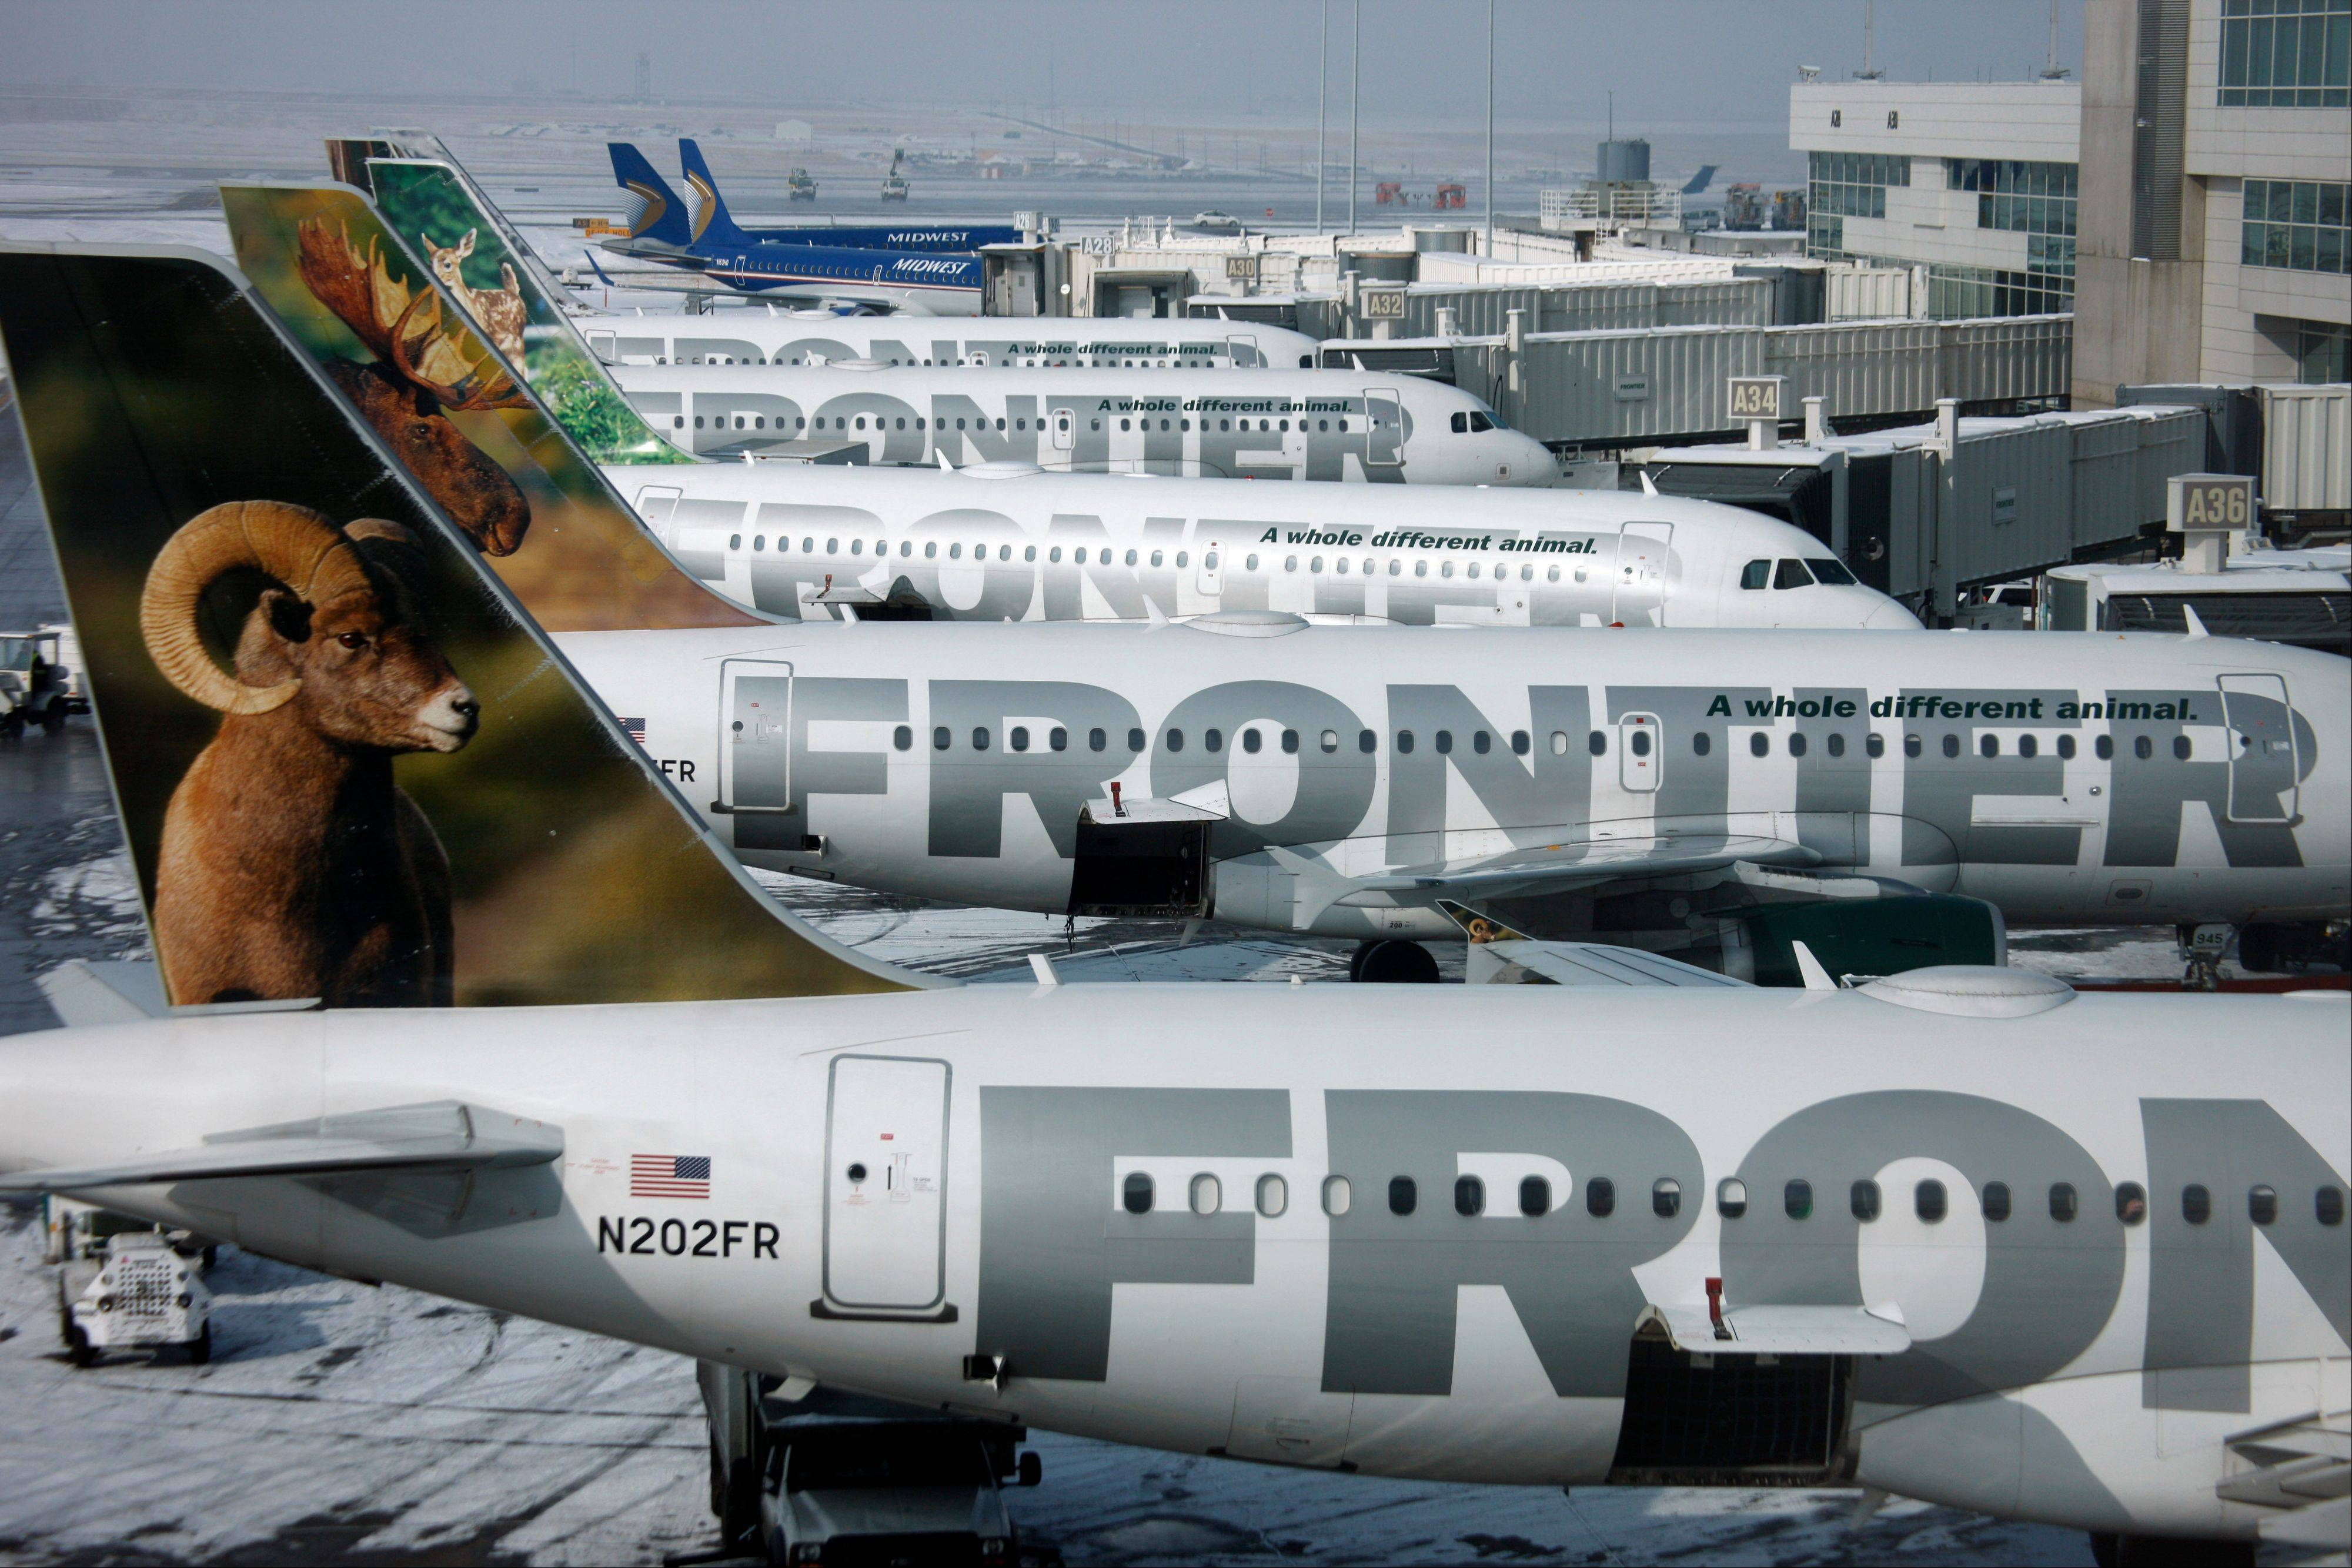 Colorado-based Frontier Airlines is planning to resurrect commercial airline service in Delaware.The company said Monday that it will begin its Airbus 320 service in Delaware on July 1, offering three flights a week to Chicago-Midway and Houston from the New Castle County Airport.